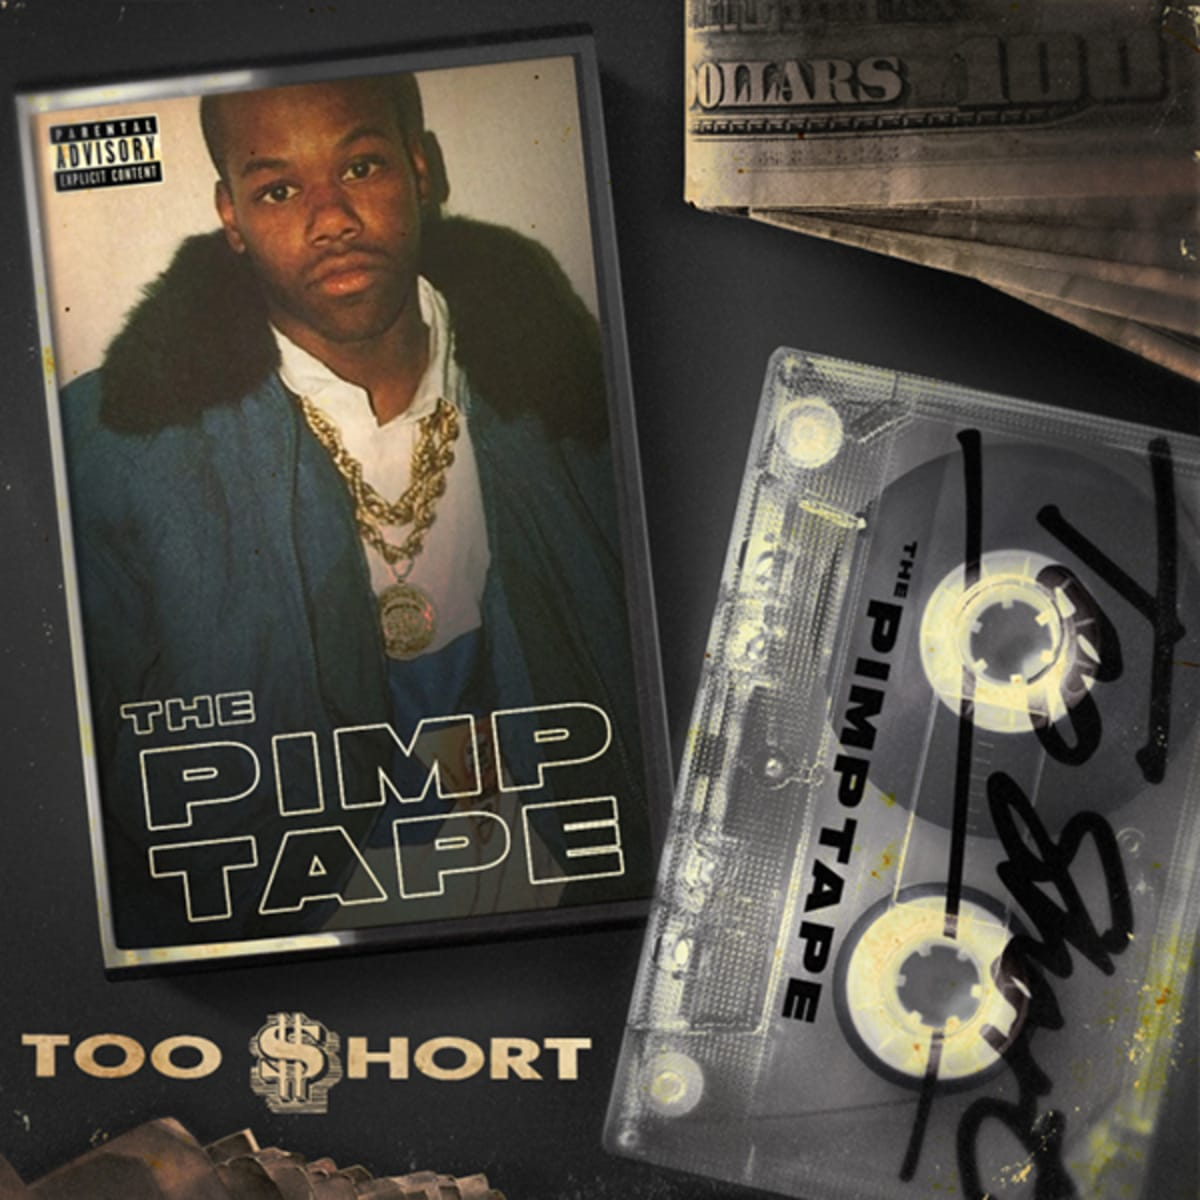 Too Short Releases New Album 'The Pimp Tape' f/ 2 Chainz, Ty Dolla Sign, Snoop Dogg, and More